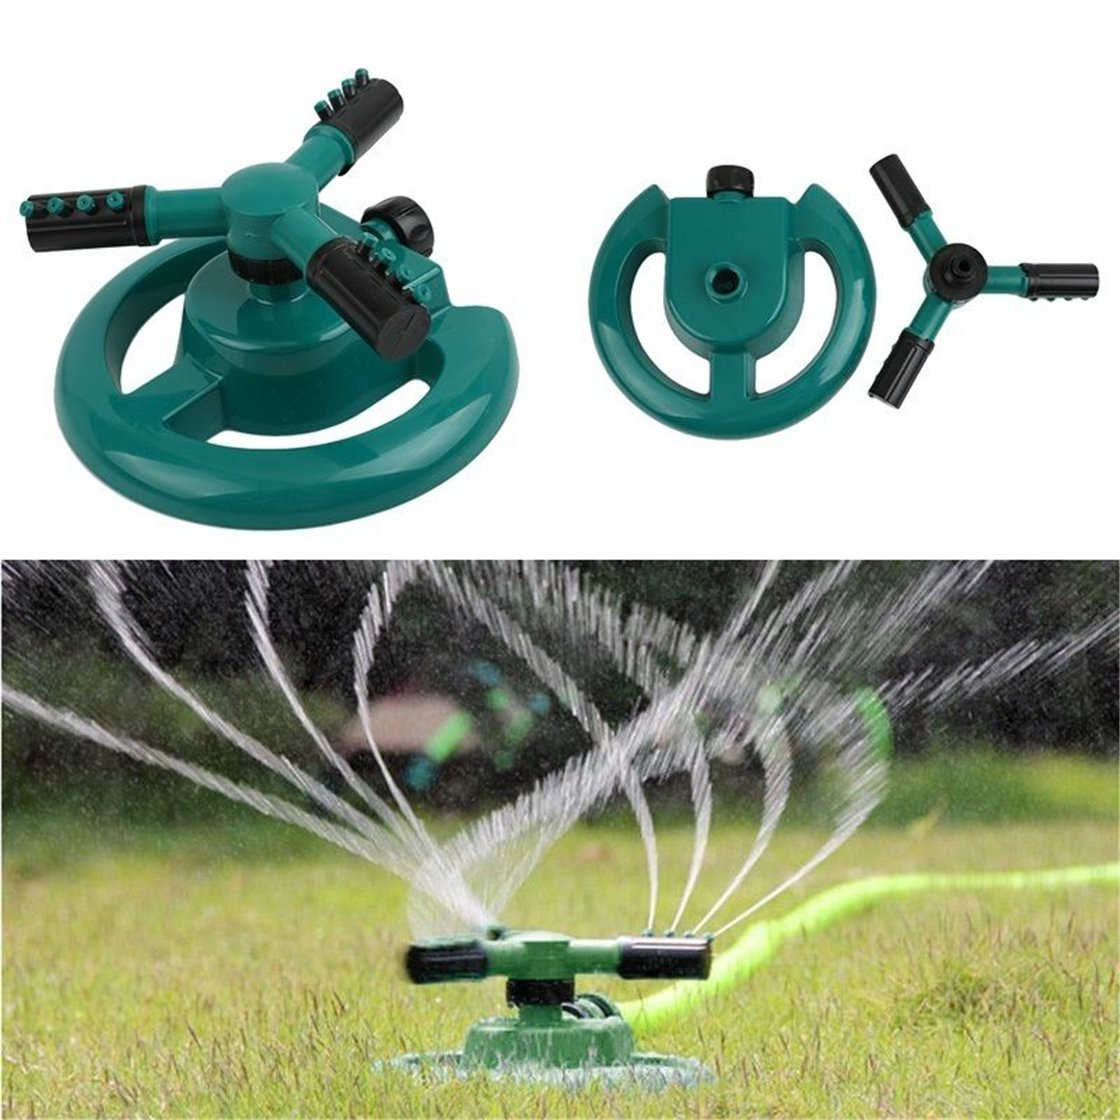 b4fa06ebd0dc Amazon.com  UNKE Lawn Sprinklers 360° Lawn Circle Rotating Water Sprinkler  3 Nozzle Garden Pipe Hose Irrigation Circular Sprayer Durable Rotary Water  ...